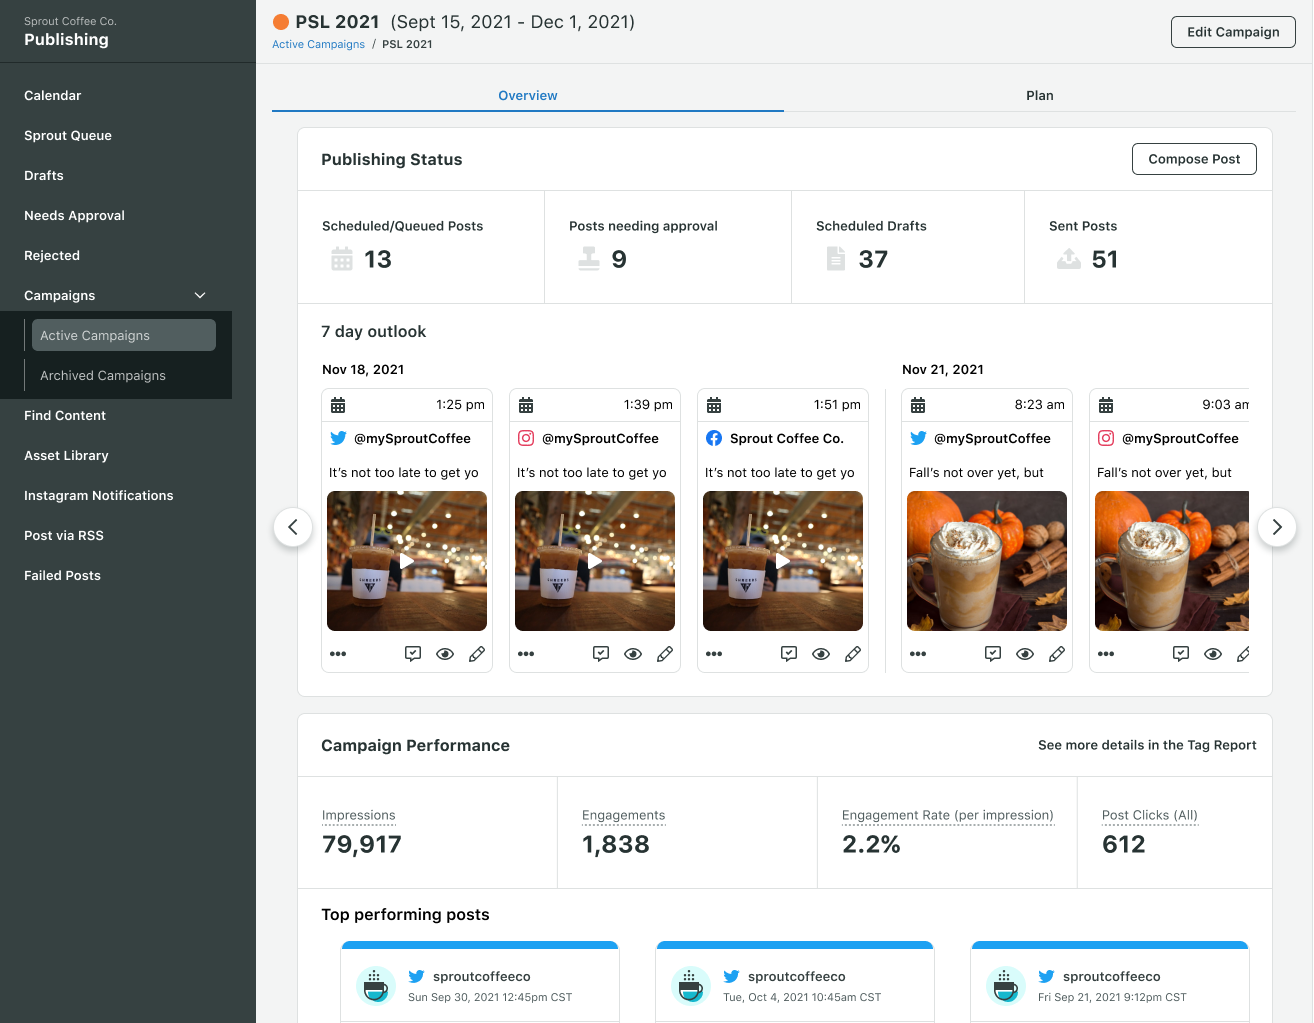 A screenshot of the Sprout Social Campaign Performance Report, which shows top posts across channel, impression count, engagement count, engagements per impression and post clicks.